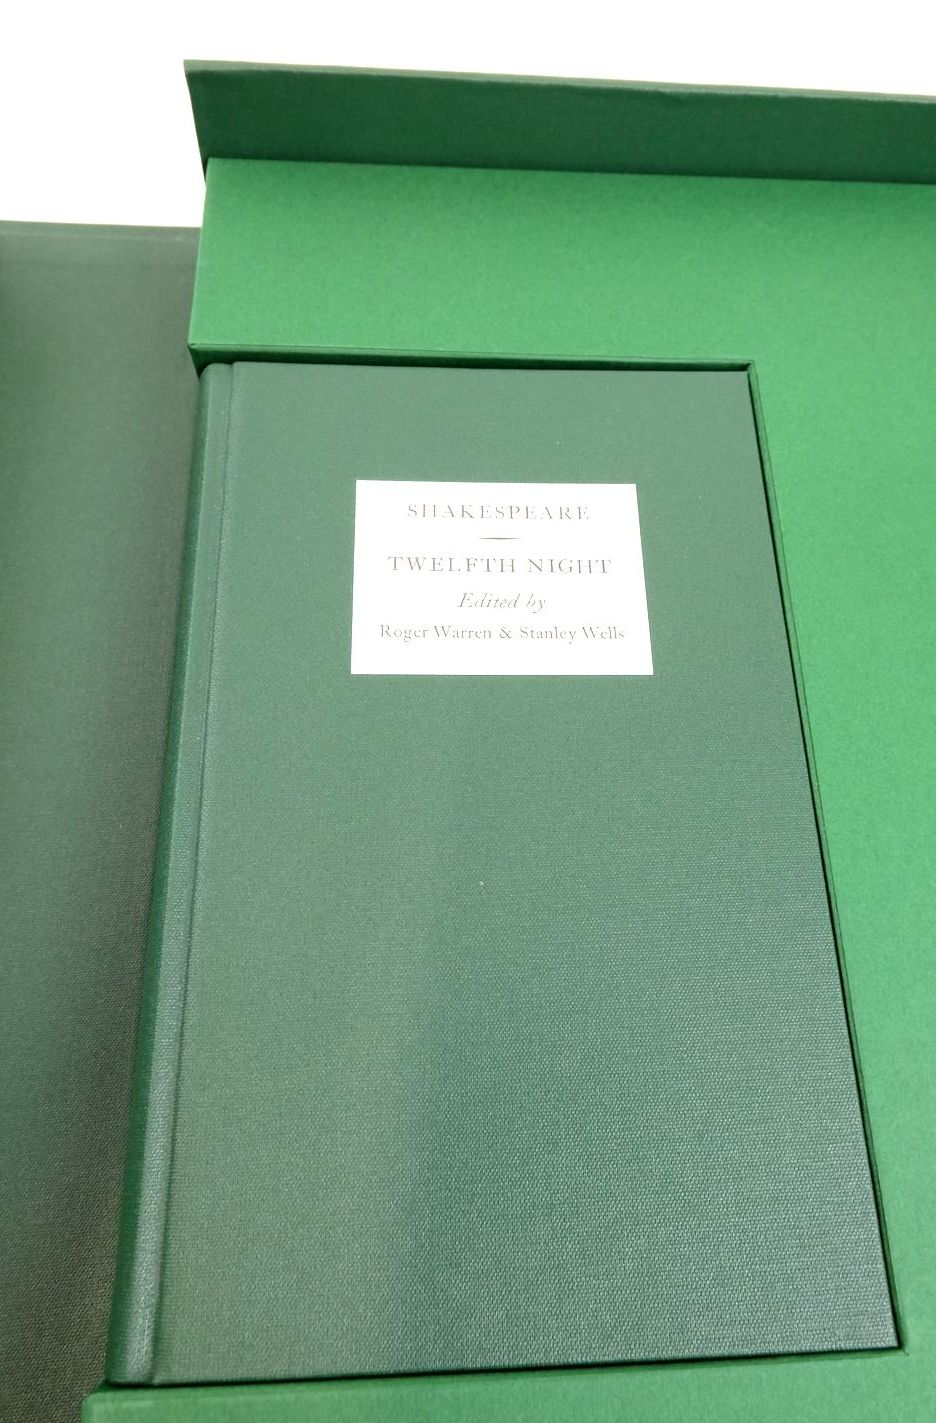 Photo of TWELFTH NIGHT OR WHAT YOU WILL (THE LETTERPRESS SHAKESPEARE) written by Shakespeare, William Warren, Roger Wells, Stanley published by Folio Society (STOCK CODE: 1821999)  for sale by Stella & Rose's Books